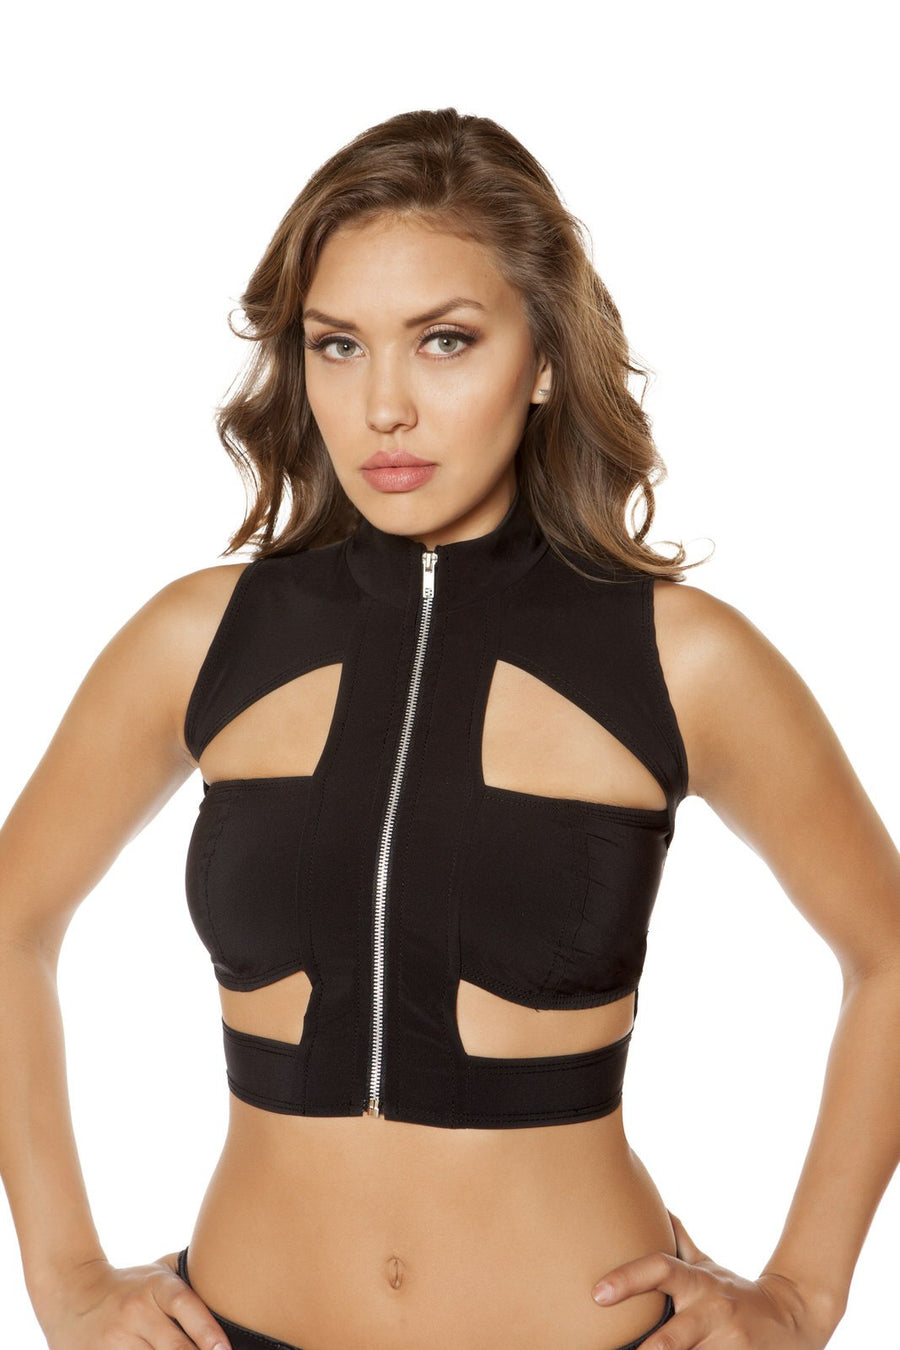 Cutout Crop Top with Zipper - Rave Party, Roma Costume, YourLamode